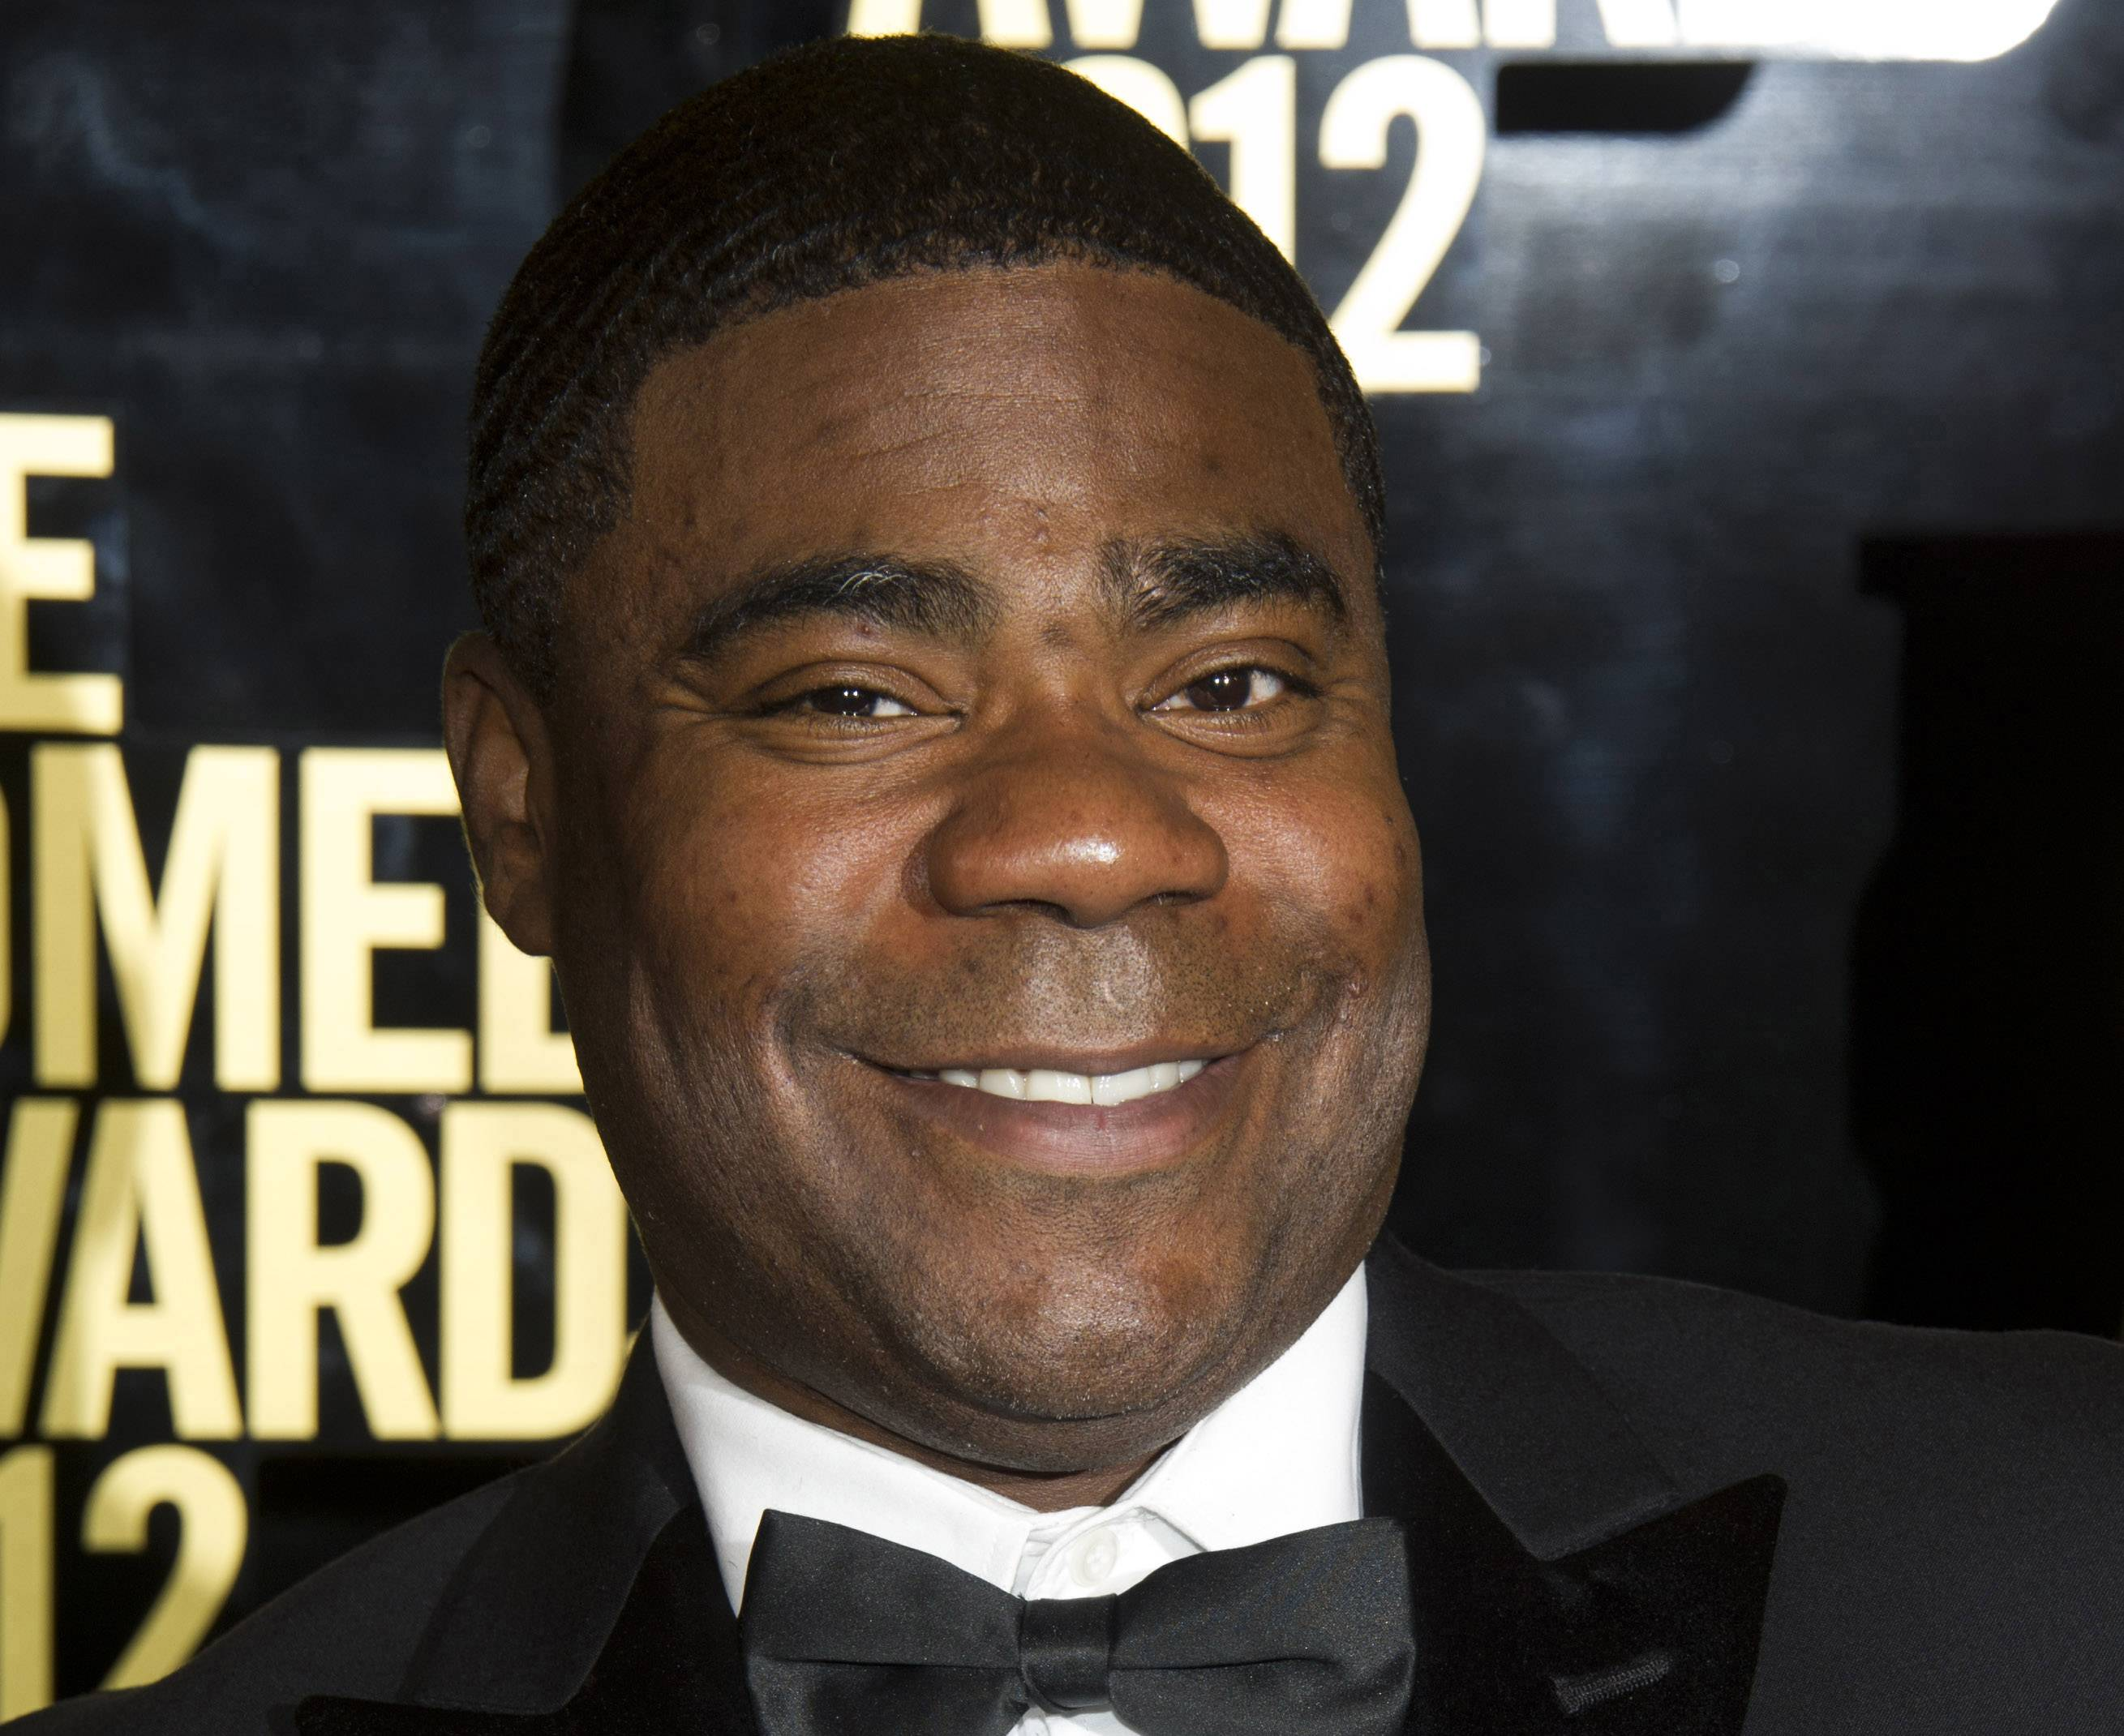 Tracy Morgan is suing Wal-Mart over the June 7, 2014, highway crash that seriously injured him and killed a fellow comedian. The lawsuit, filed Thursday, July 10, 2014, in U.S. District Court in New Jersey, claims Wal-Mart was negligent when a driver of one of its tractor-trailers rammed into Morgan's limousine.